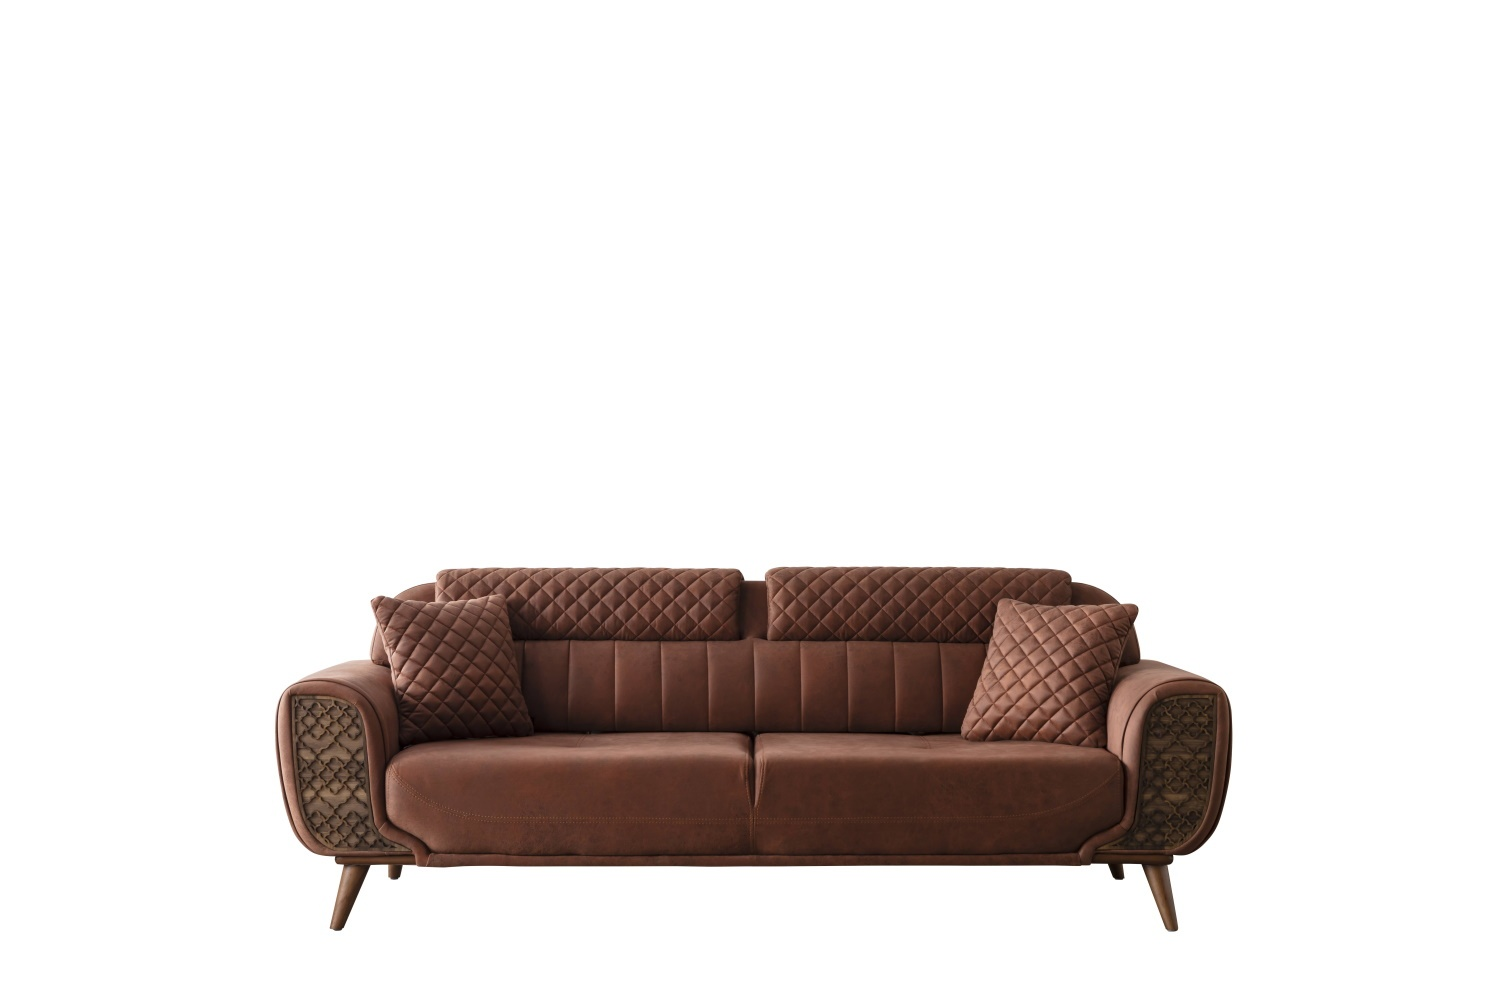 Sofa_Vega_Orange_Bild01